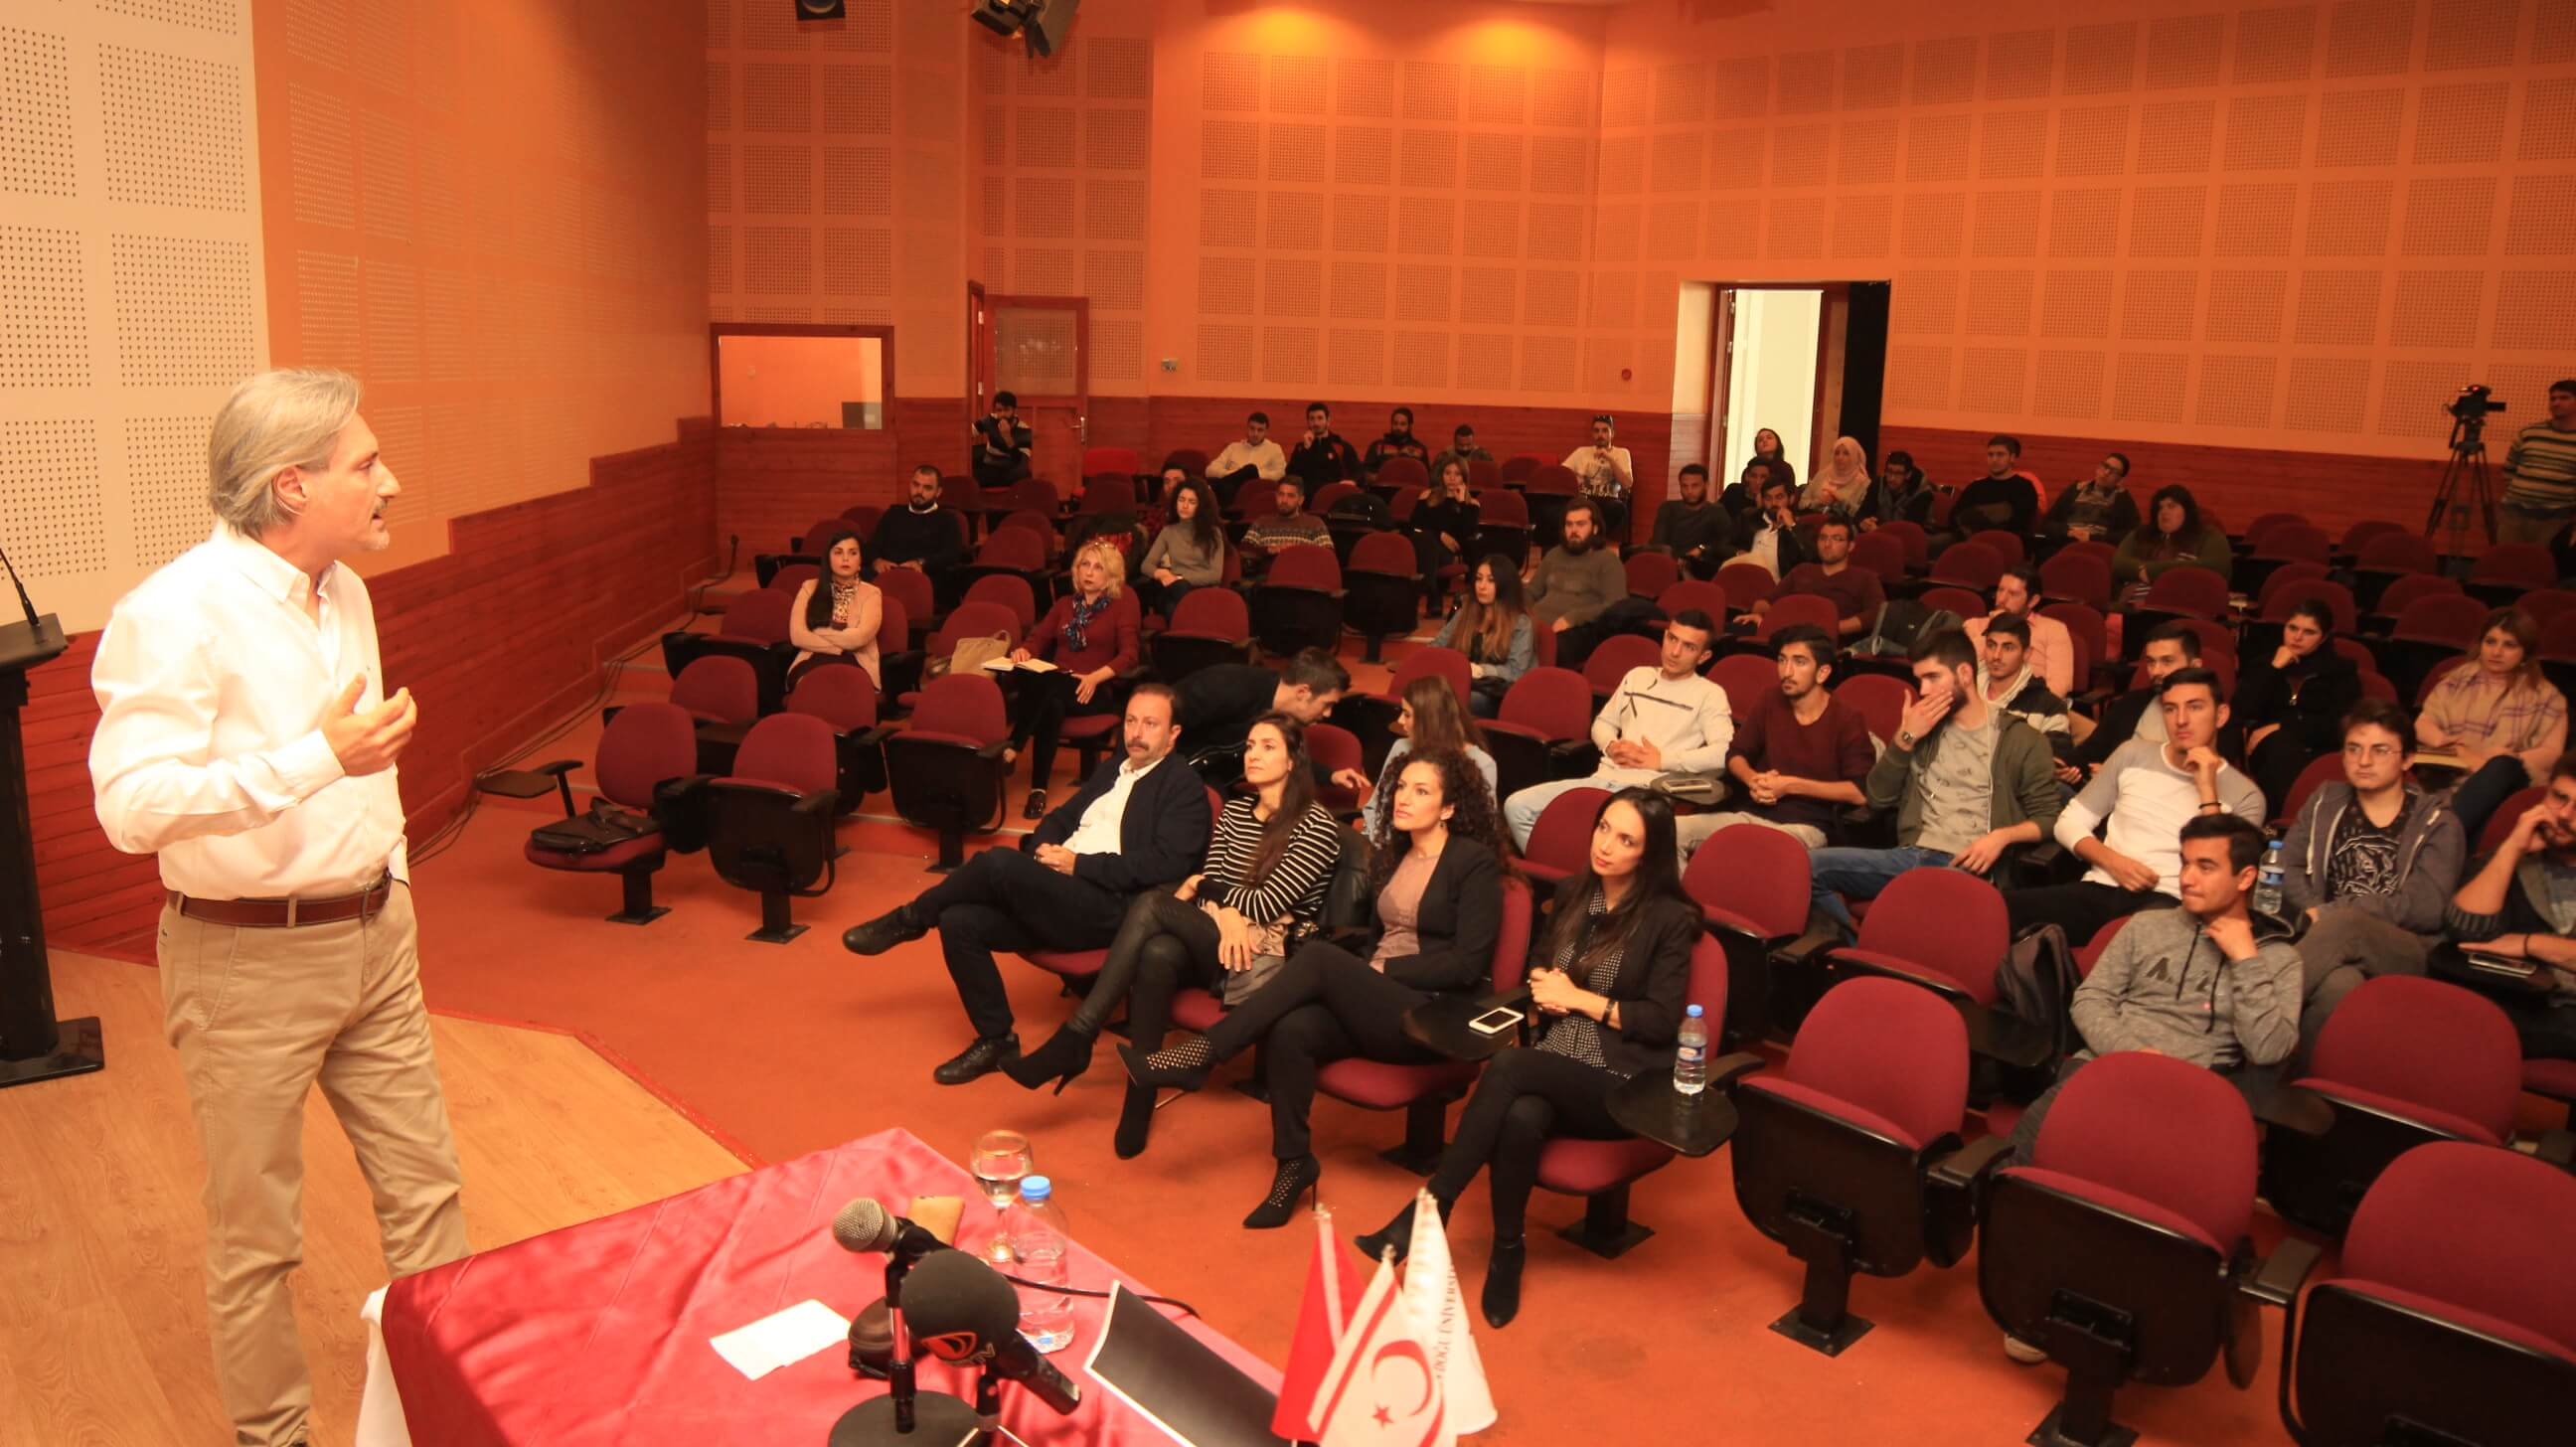 Near East University Faculty of Community Department of Public Relations and Advertising Brand Strategies Management Conference hosted Arkan Oryal Özbay